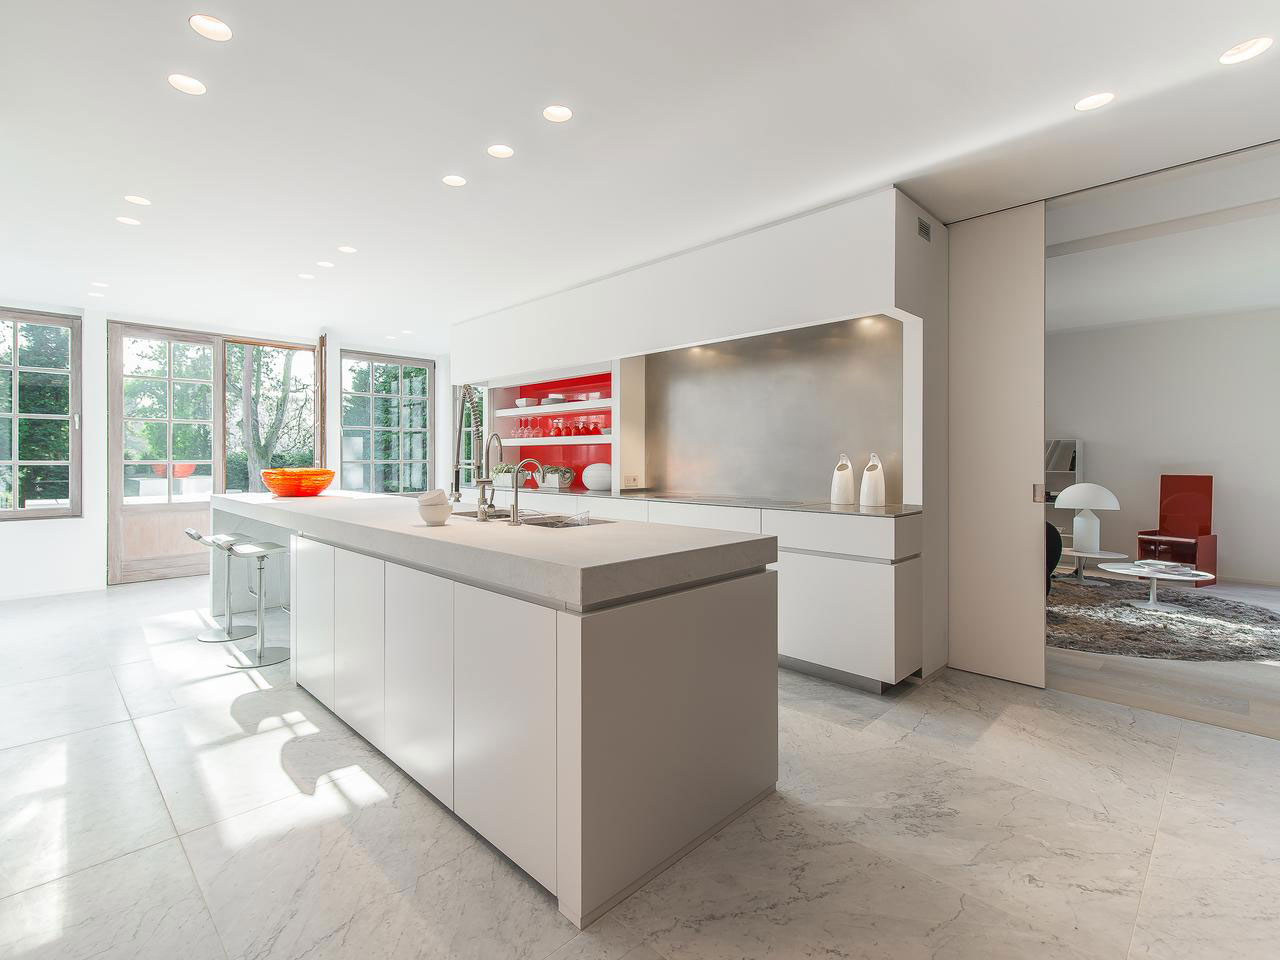 Breakfast Bar, Kitchen Island, House Renovation in Sint-Genesius-Rode, Belgium